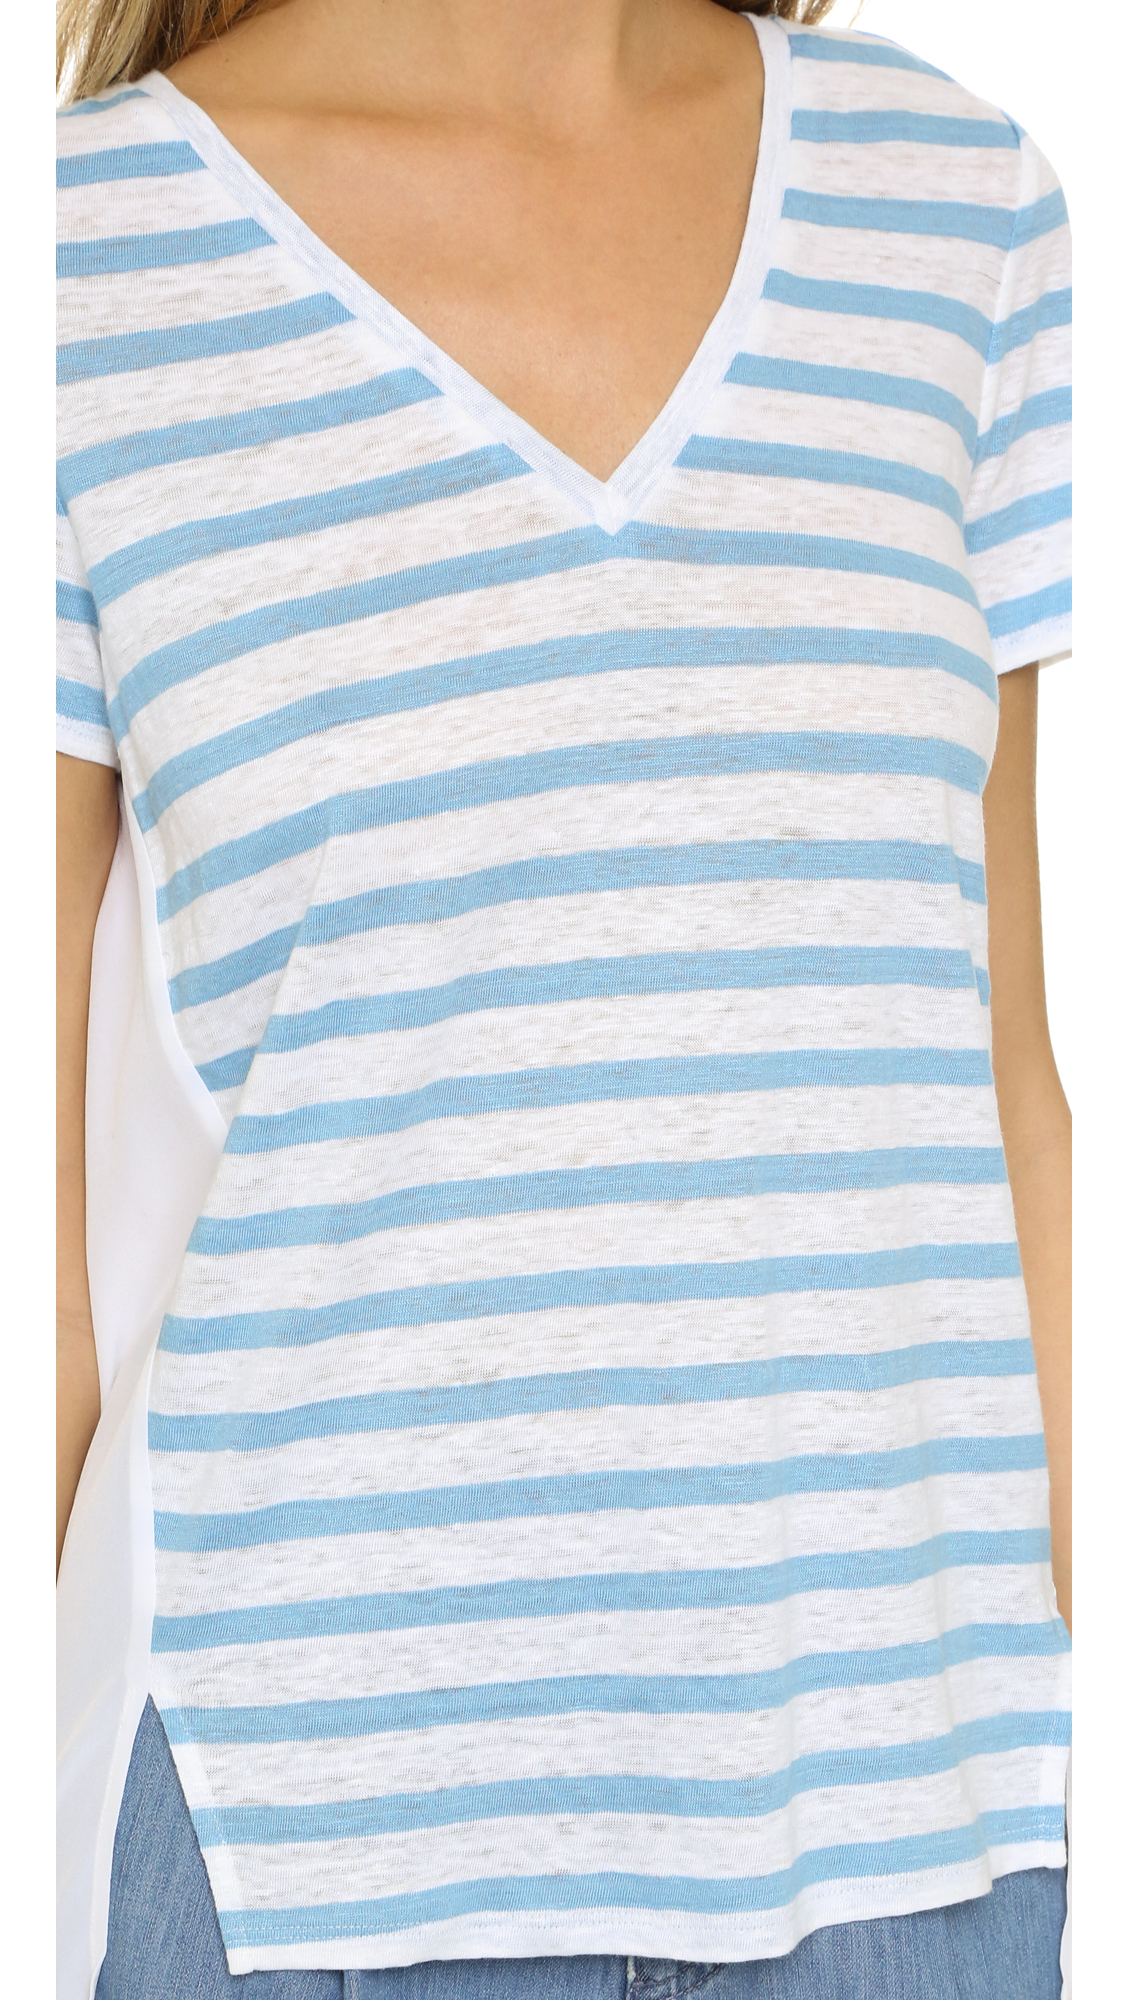 Lyst tory burch t shirt with woven back in blue for Tory burch t shirt